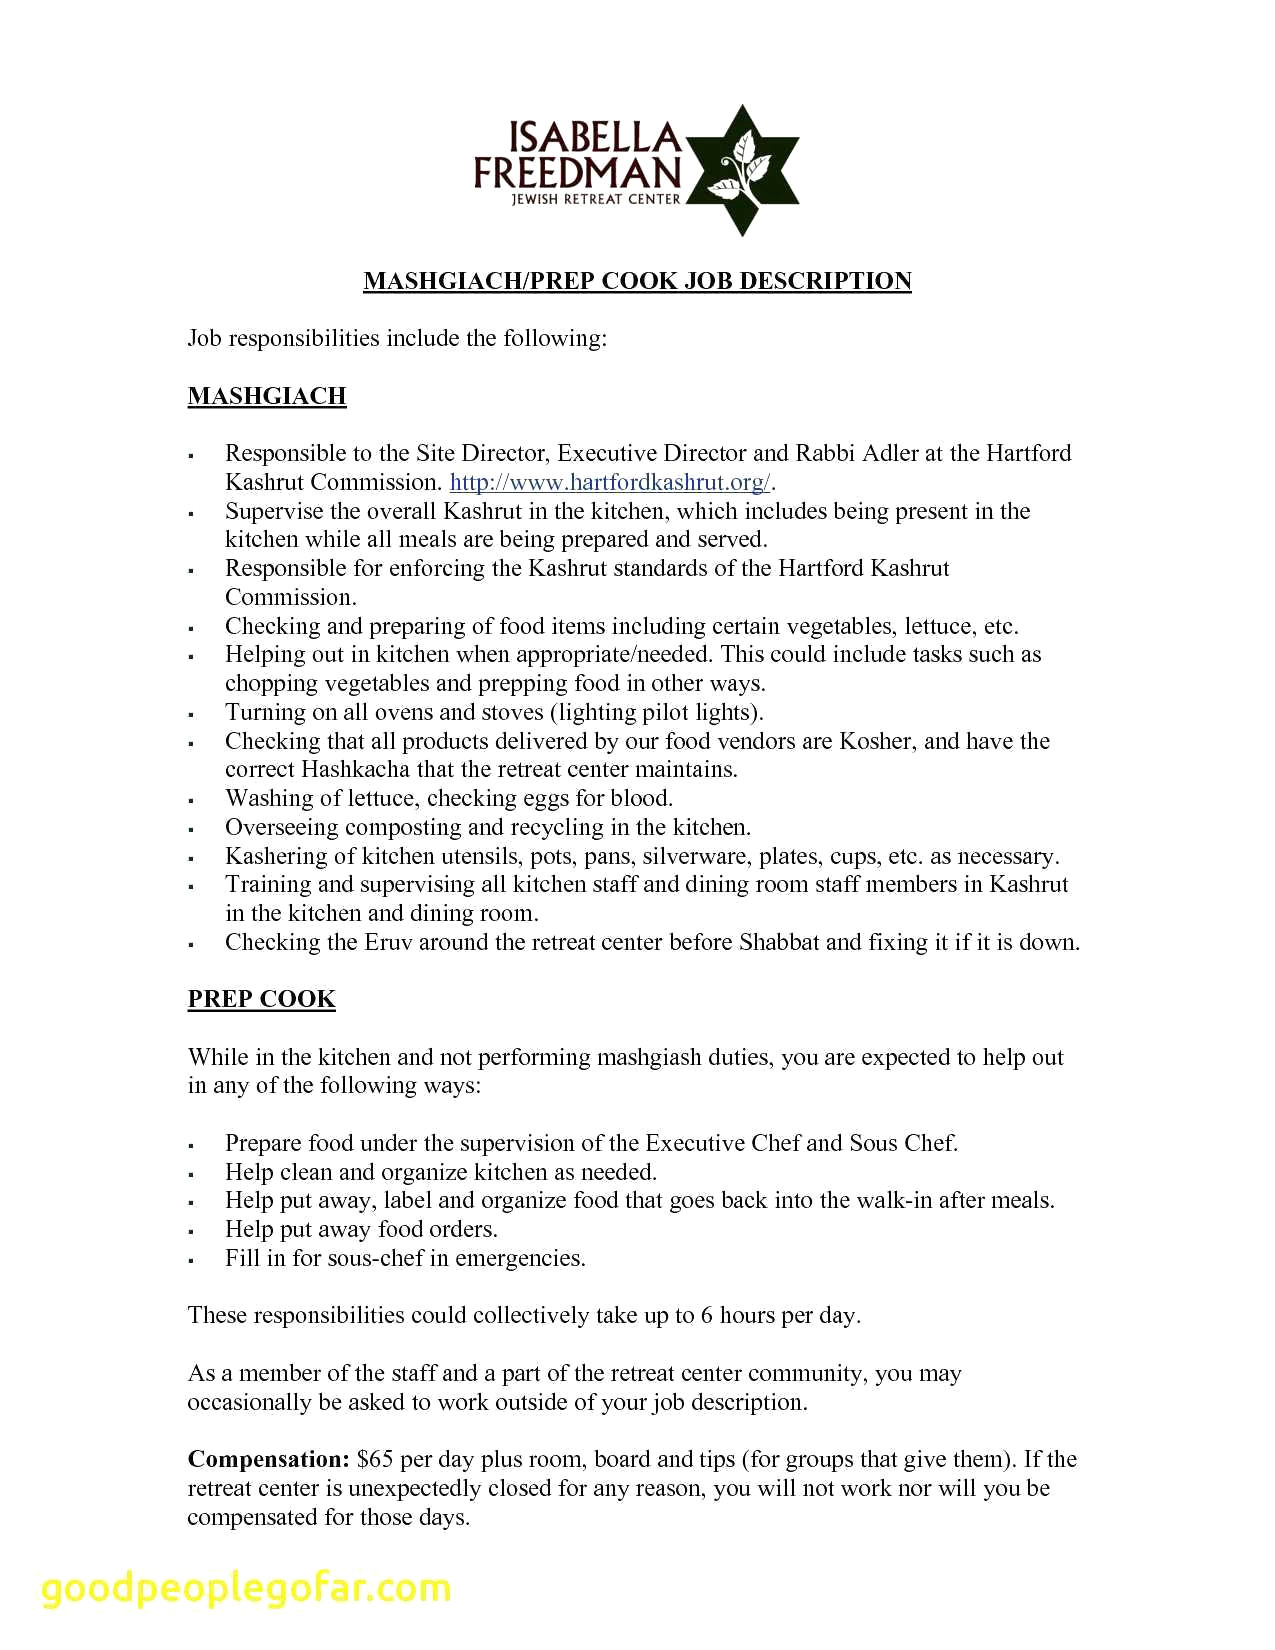 outside sales rep resume Collection-How to Write A Good Job Resume From Job Letter 0d Related Post 12-i